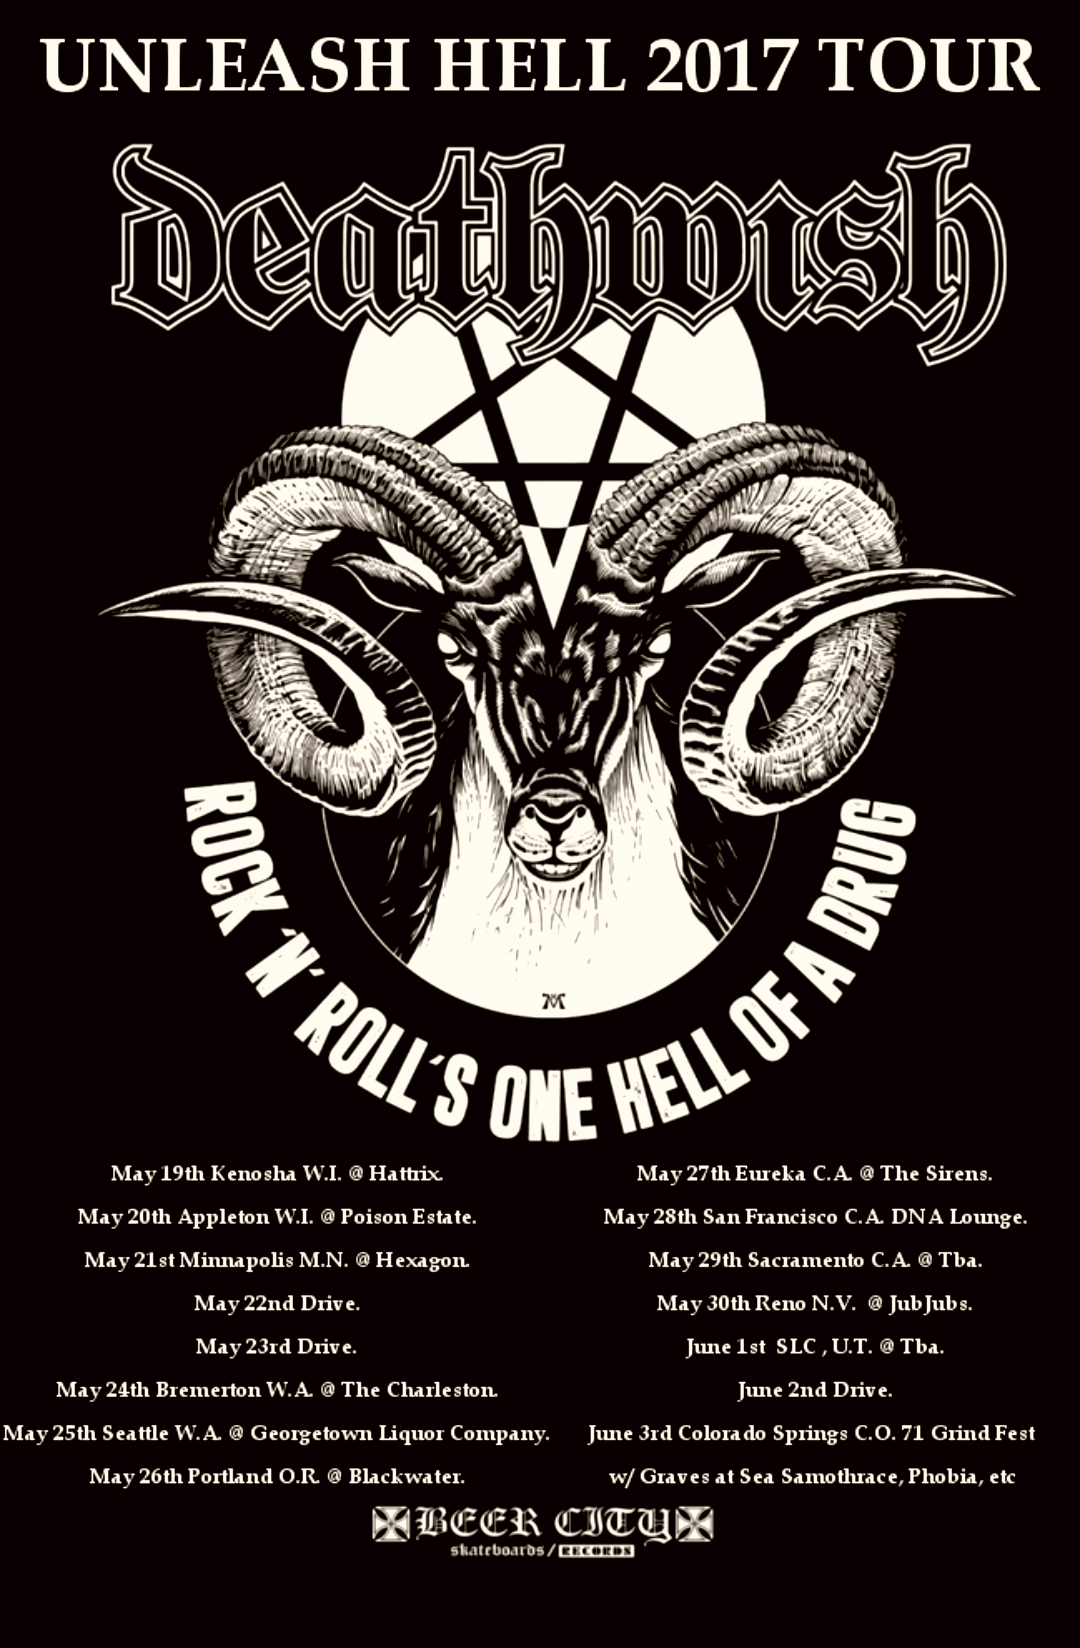 Deathwish Unleash Hell Tour